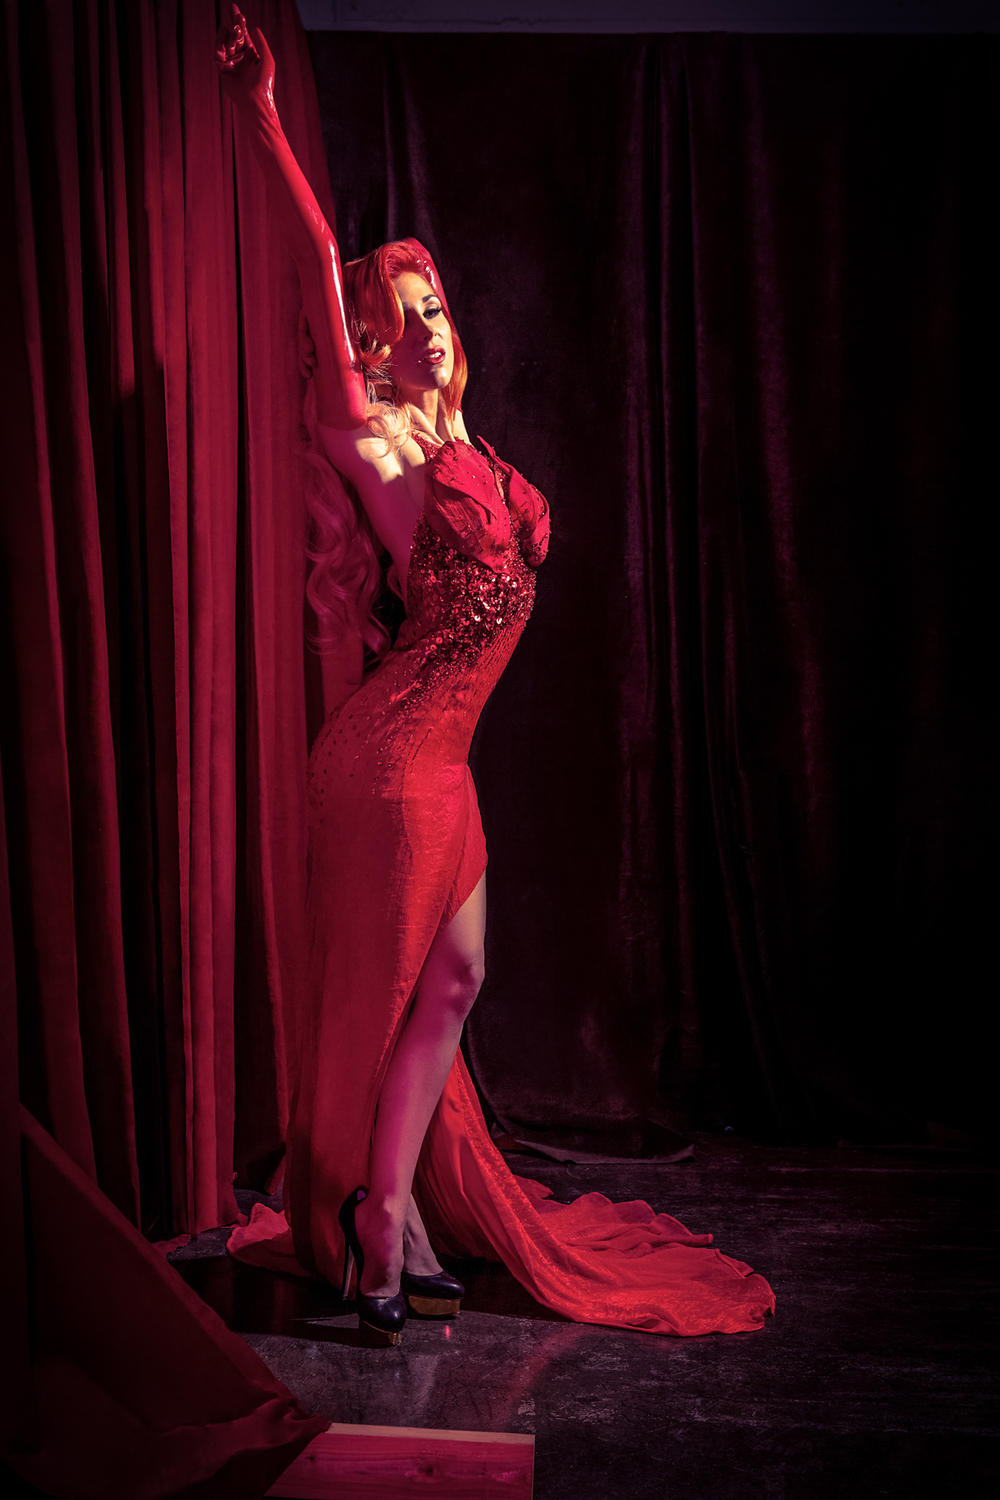 Bonnie McKee Photographed by Bradford Rogne